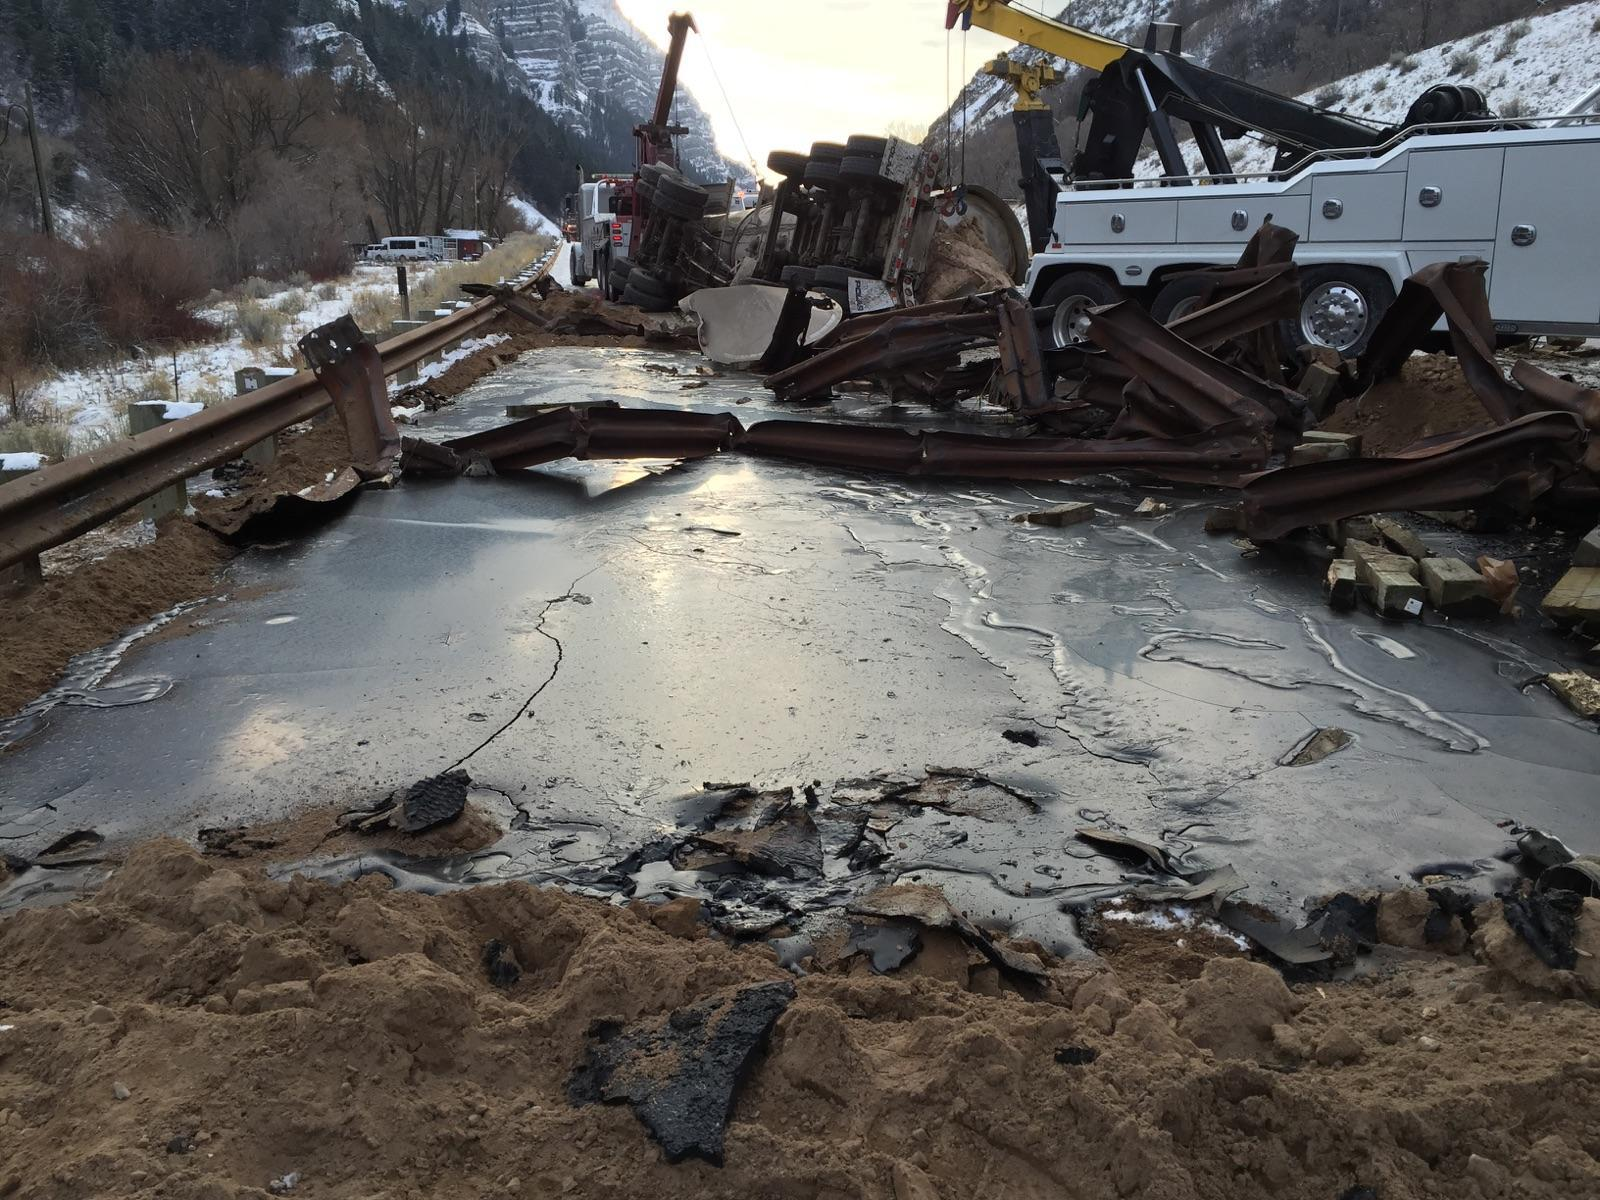 Crude oil spill on Highway 189 in Provo Canyon.